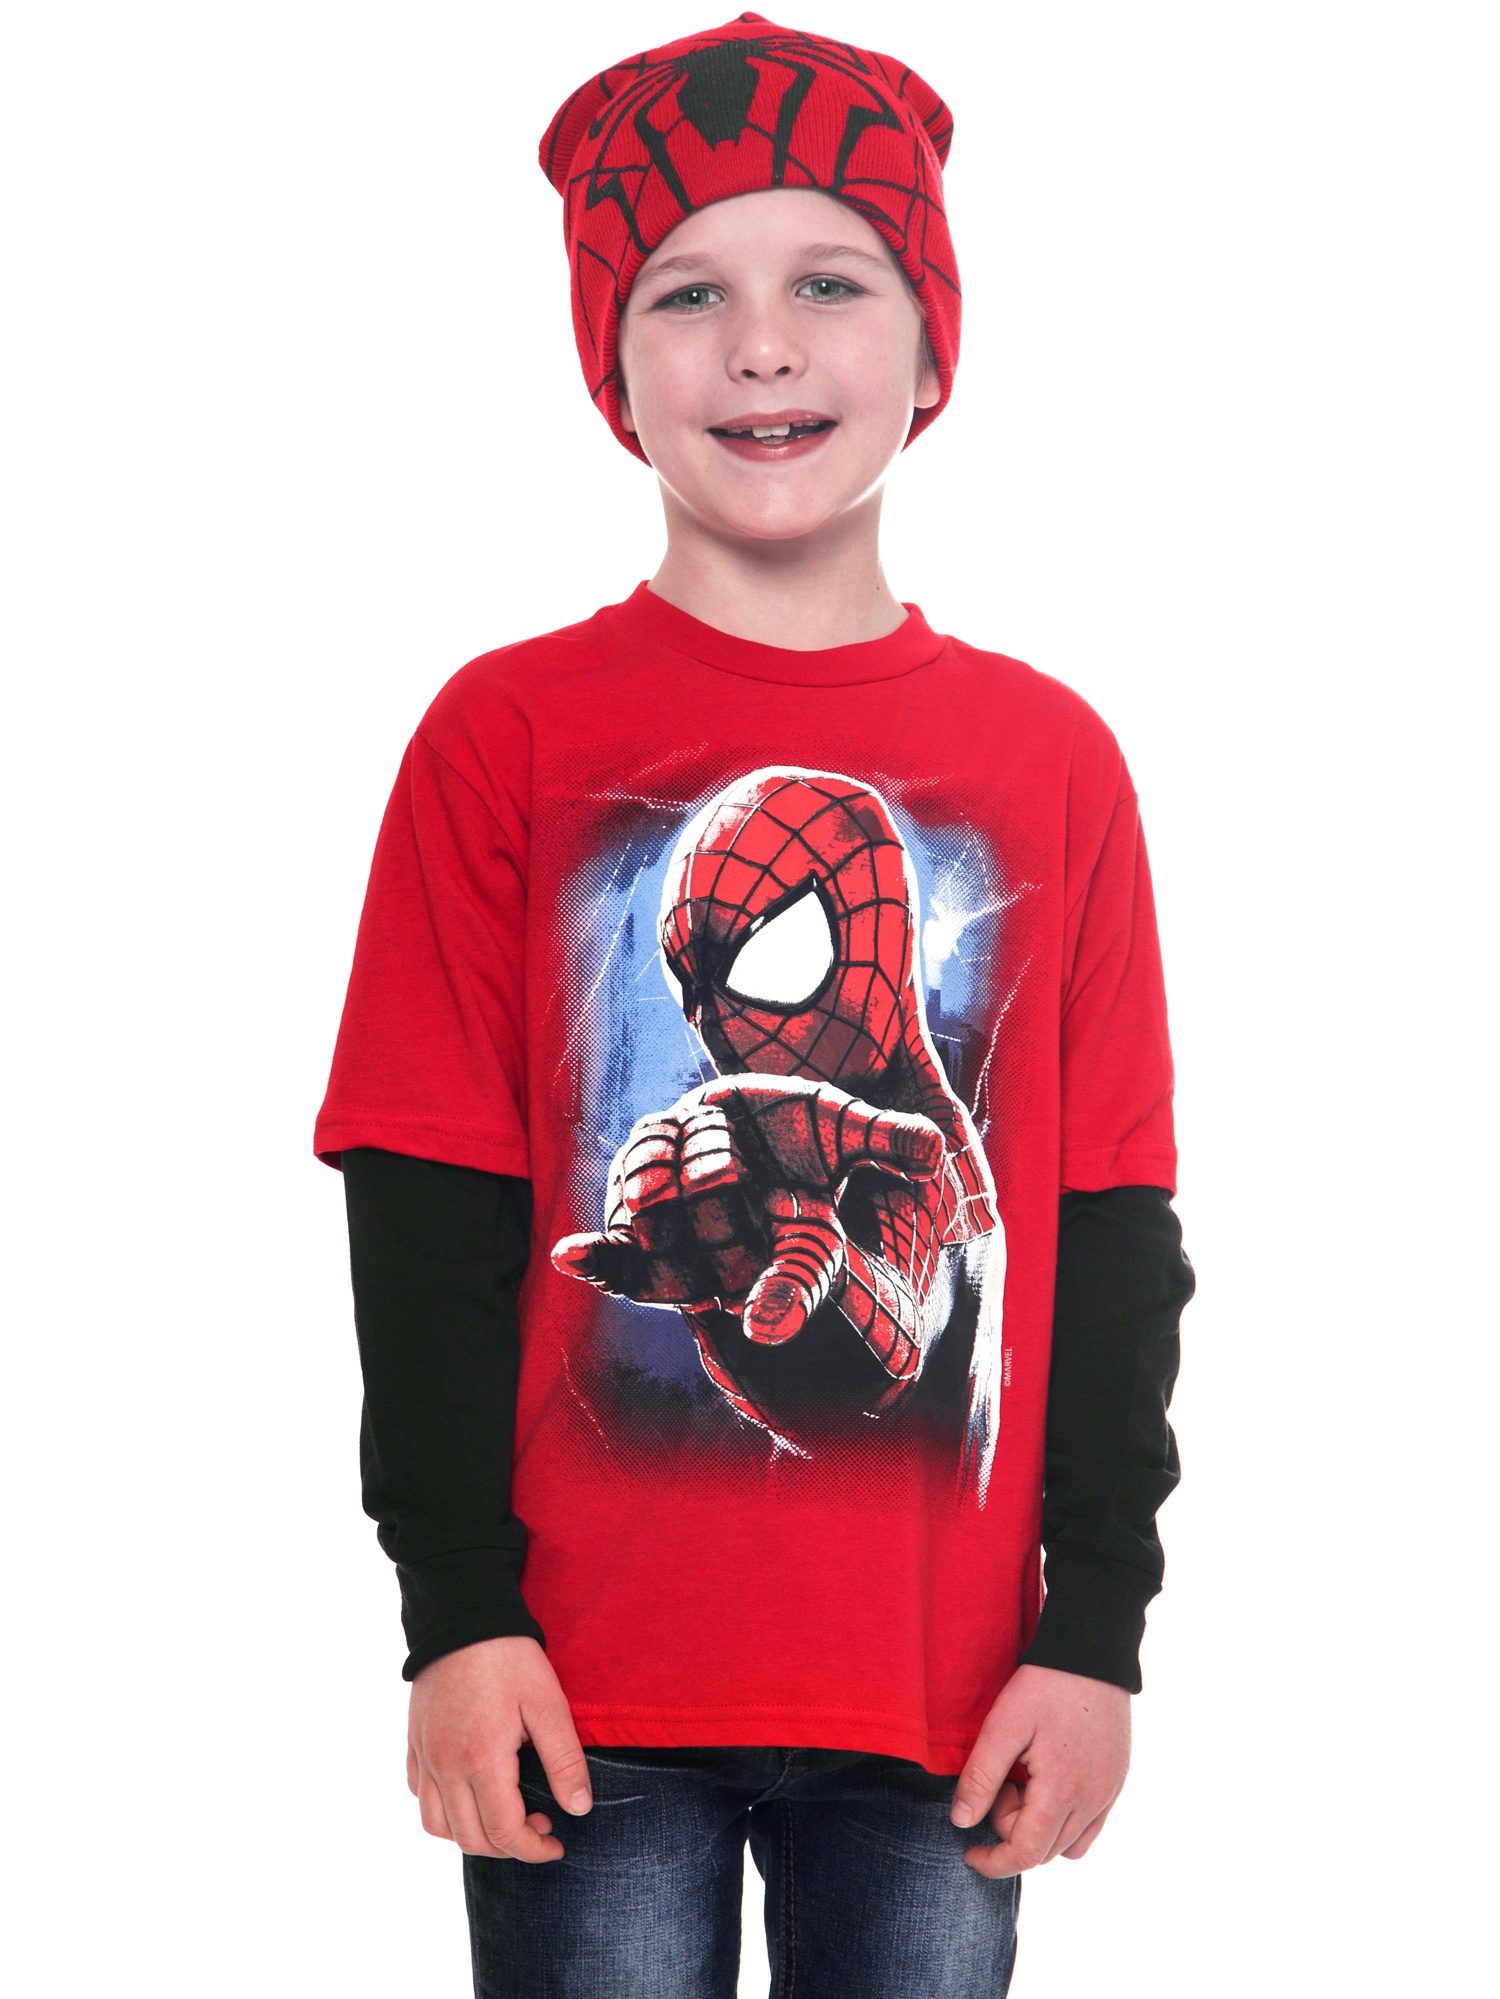 Marvel Spiderman Long Sleeve Kids YouthT-Shirt with Beanie Fashion Combo